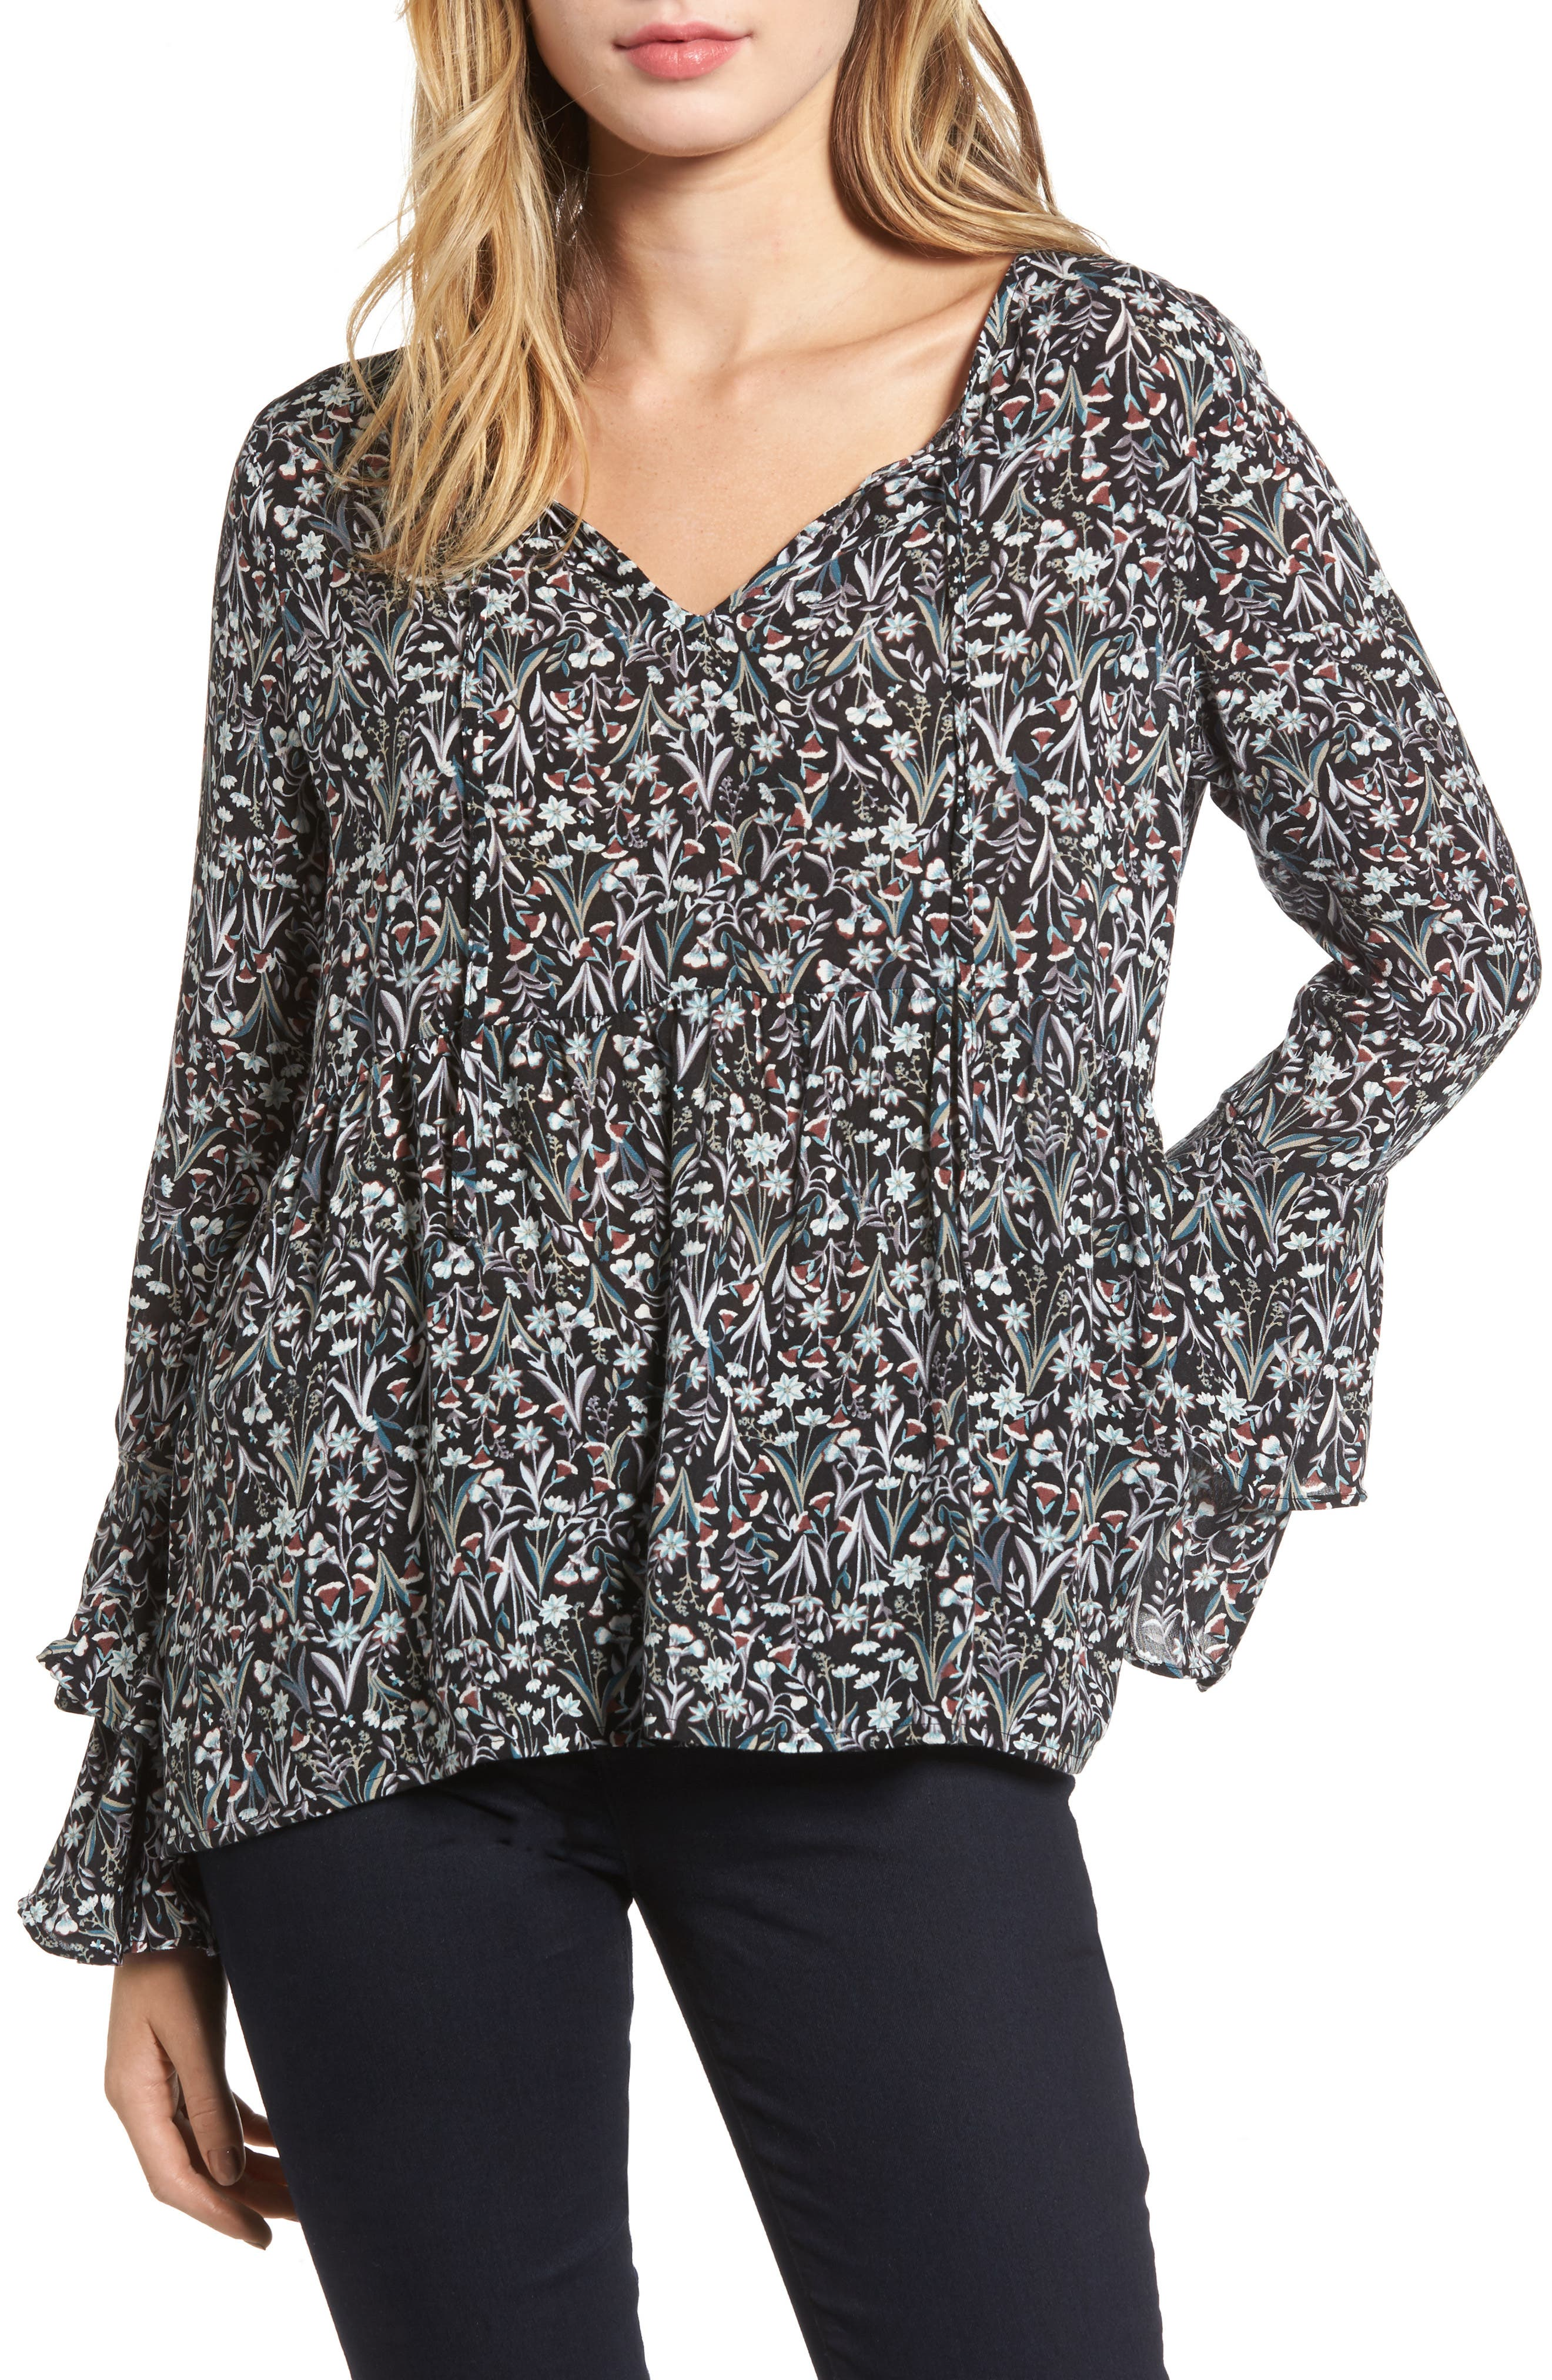 Bell Sleeve Top,                         Main,                         color, Black Compact Floral